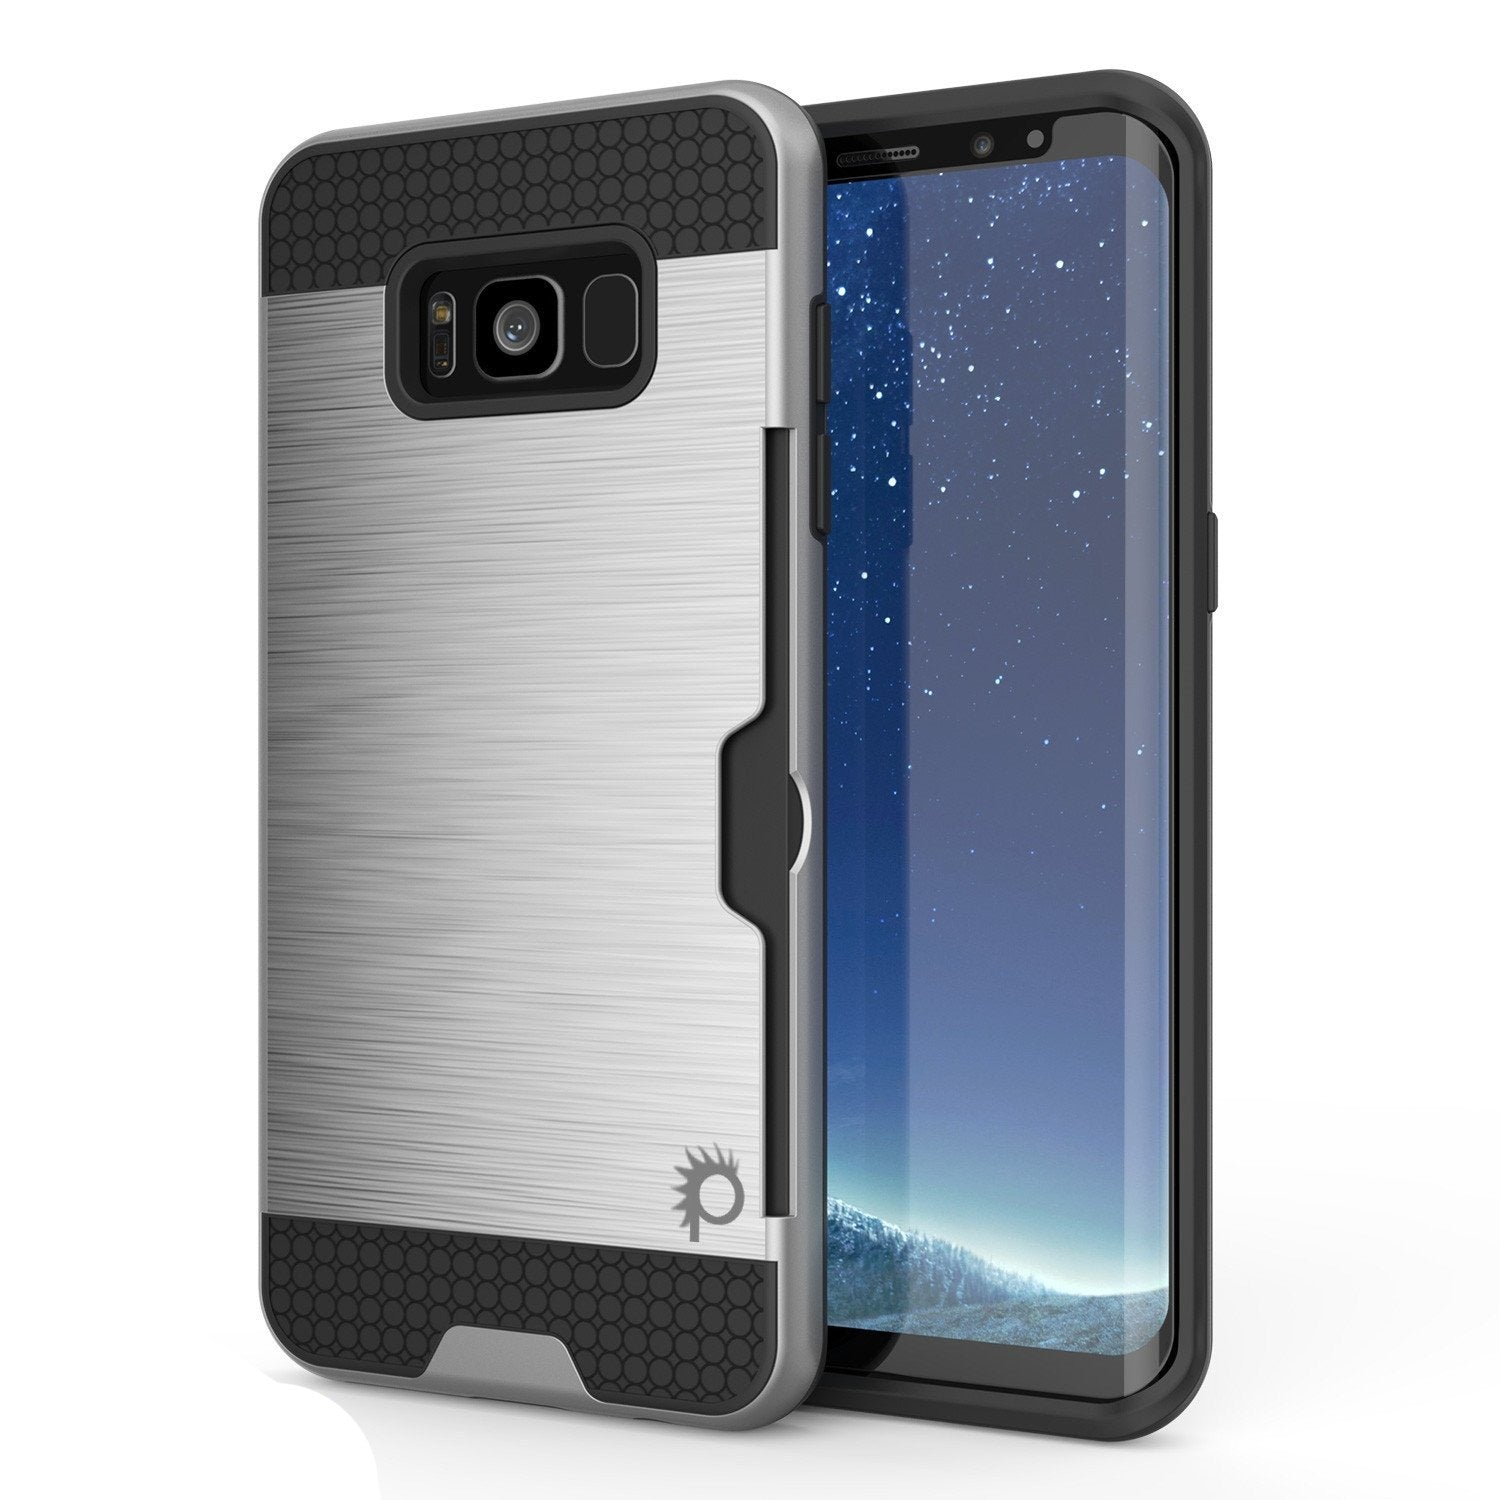 Galaxy S8 Case, PUNKcase [SLOT Series] [Slim Fit] Dual-Layer Armor Cover w/Integrated Anti-Shock System, Credit Card Slot & PUNKSHIELD Screen Protector for Samsung Galaxy S8 [Silver]